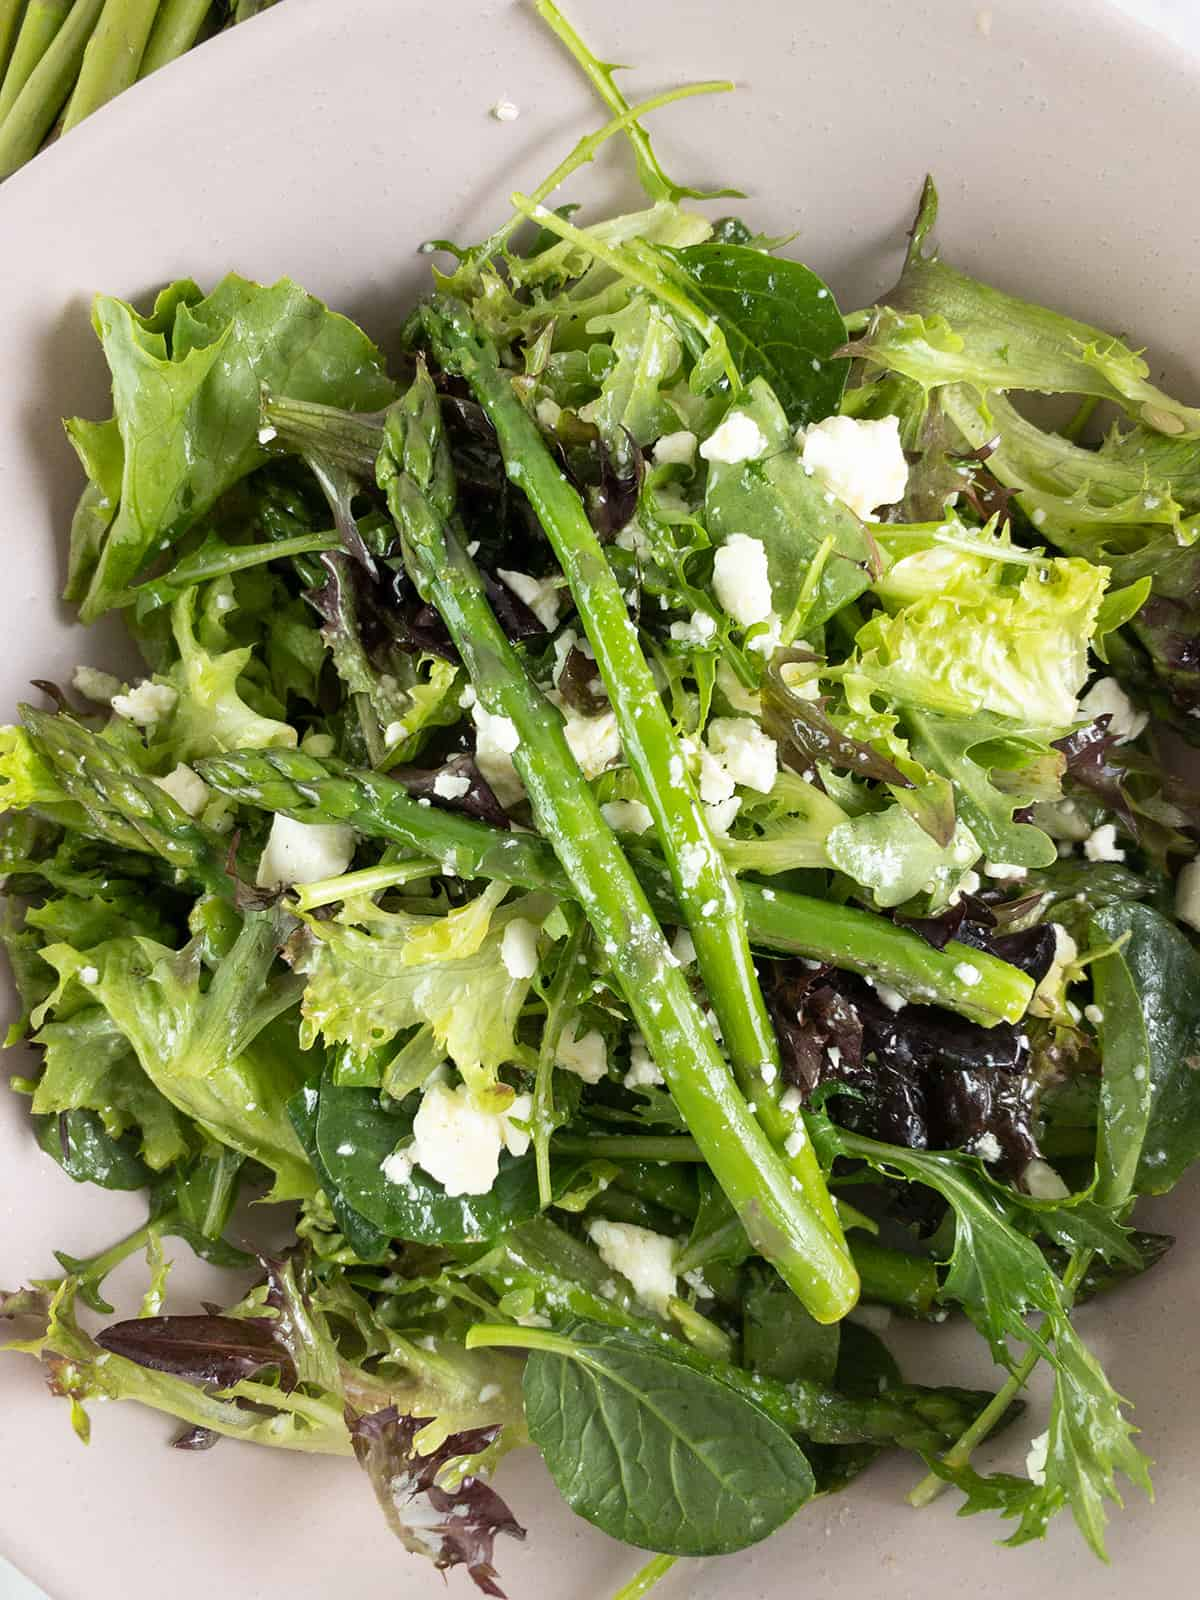 CLOSE-UP OF BLANCHED ASPARAGUS AND FETA SALAD